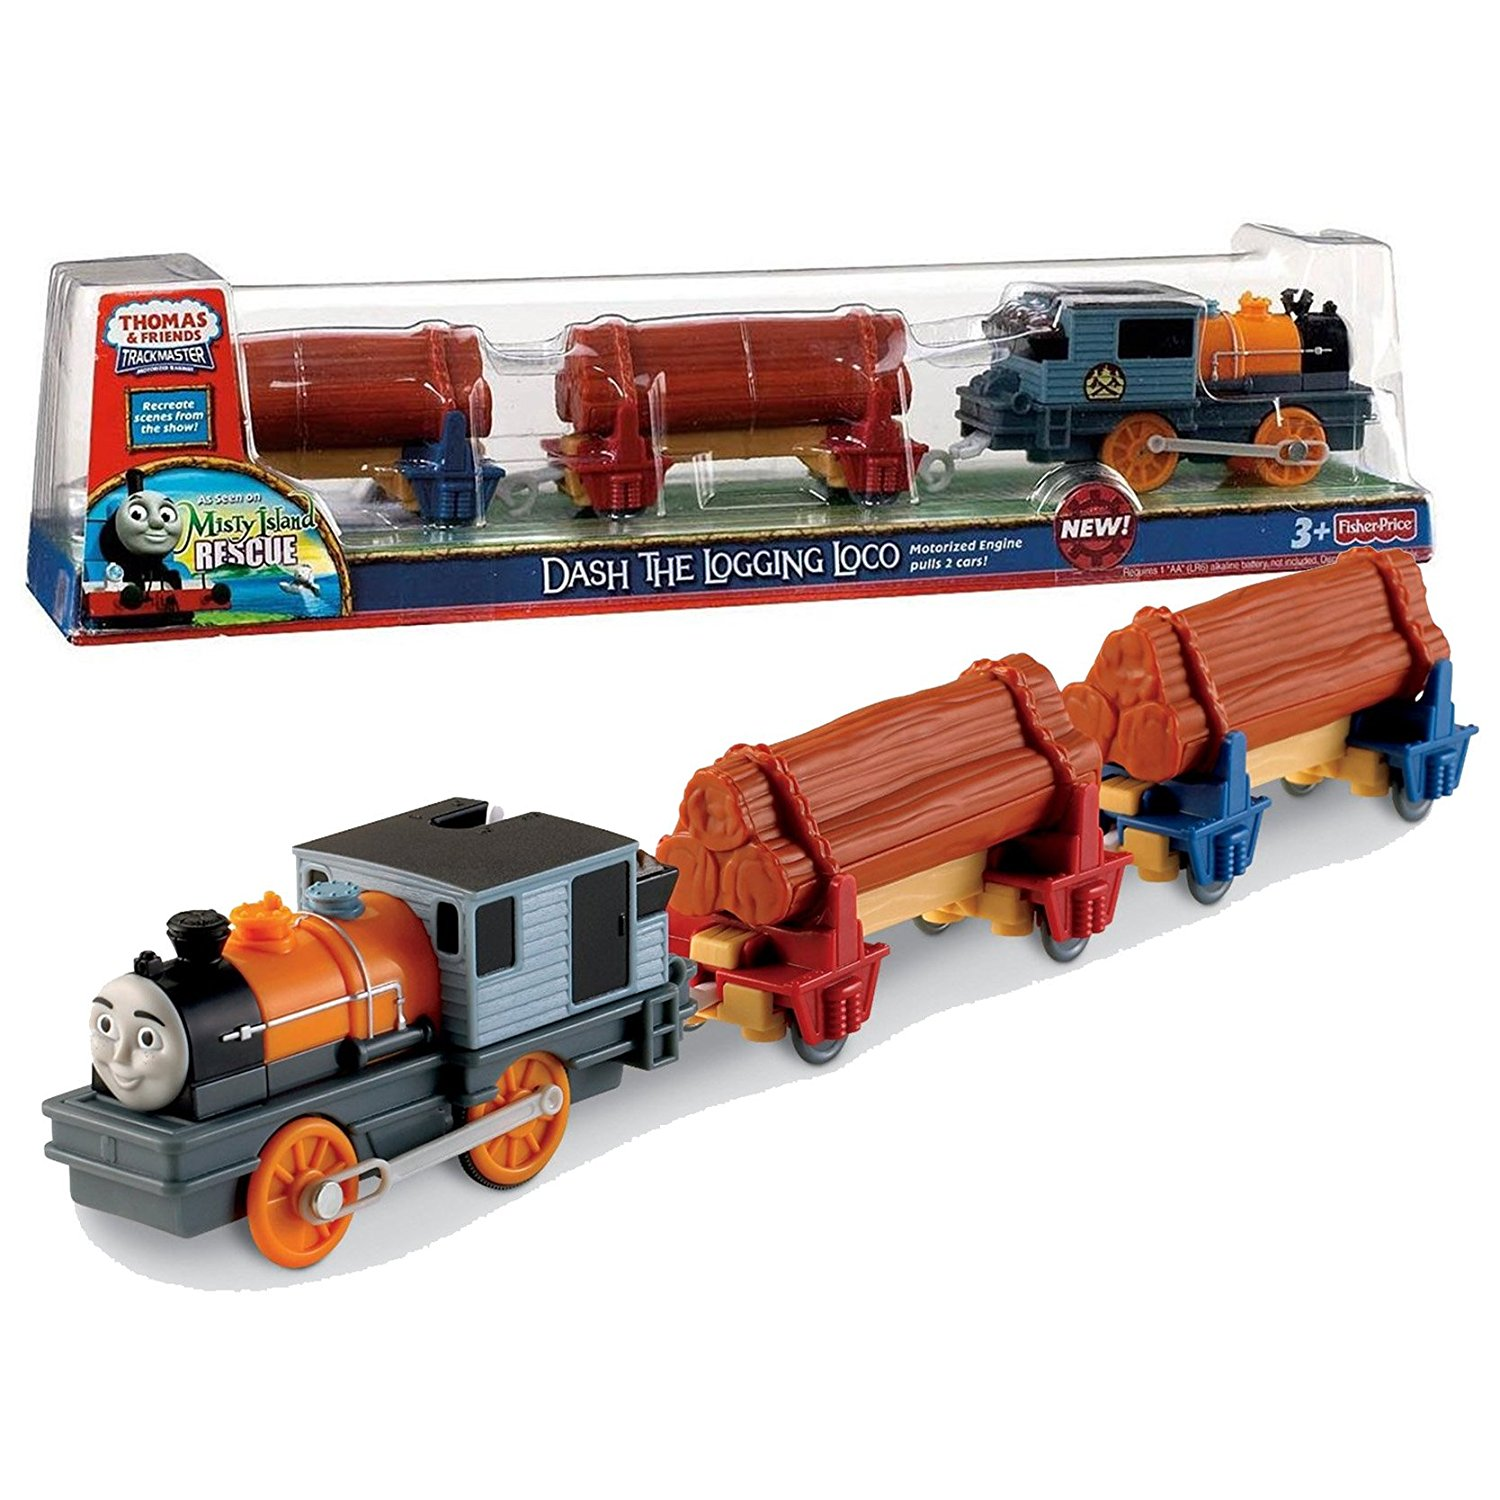 """Fisher Price Year 2010 Thomas and Friends As Seen On """"Misty Island Rescue"""" DVD Series Trackmaster Motorized Railway Battery Powered Tank Engine 3 Pack Train Set - DASH THE LOGGING LOCO with 2 Flatbed Train Cars Loaded with Logs"""